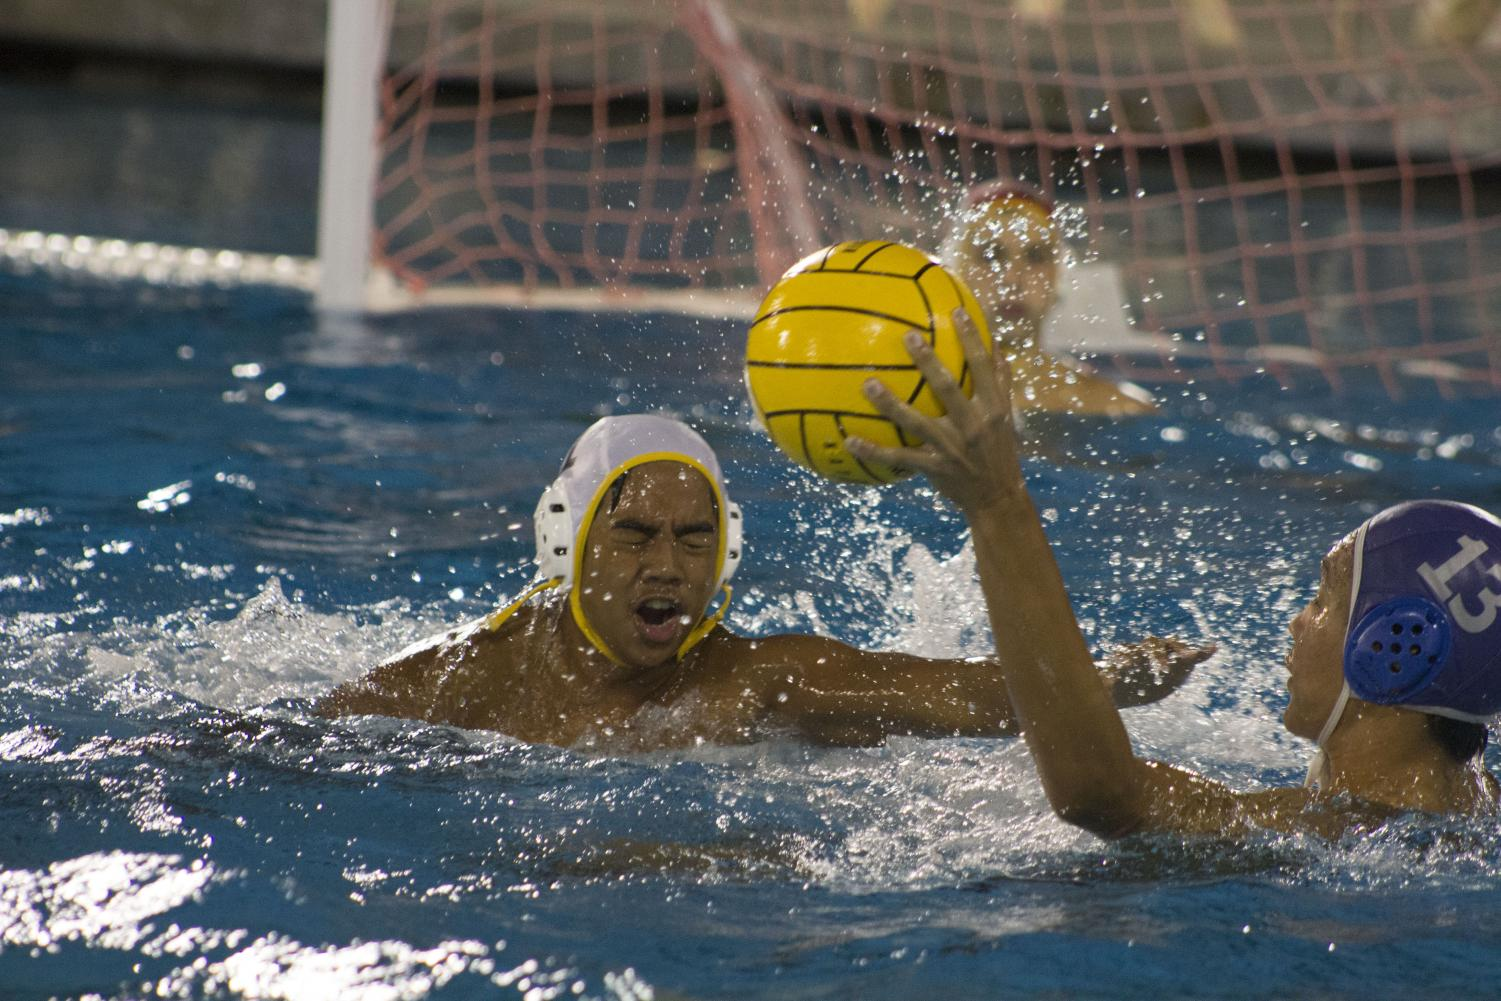 Birmingham+Community+Charter+High+School%27s+varsity+boys+water+polo+player+CJ+Gorospe+gets+splashed+on+during+the+CIF+Los+Angeles+City+Section+Championship+match+against+Palisade+Charter+High+School+on+Nov.+8.